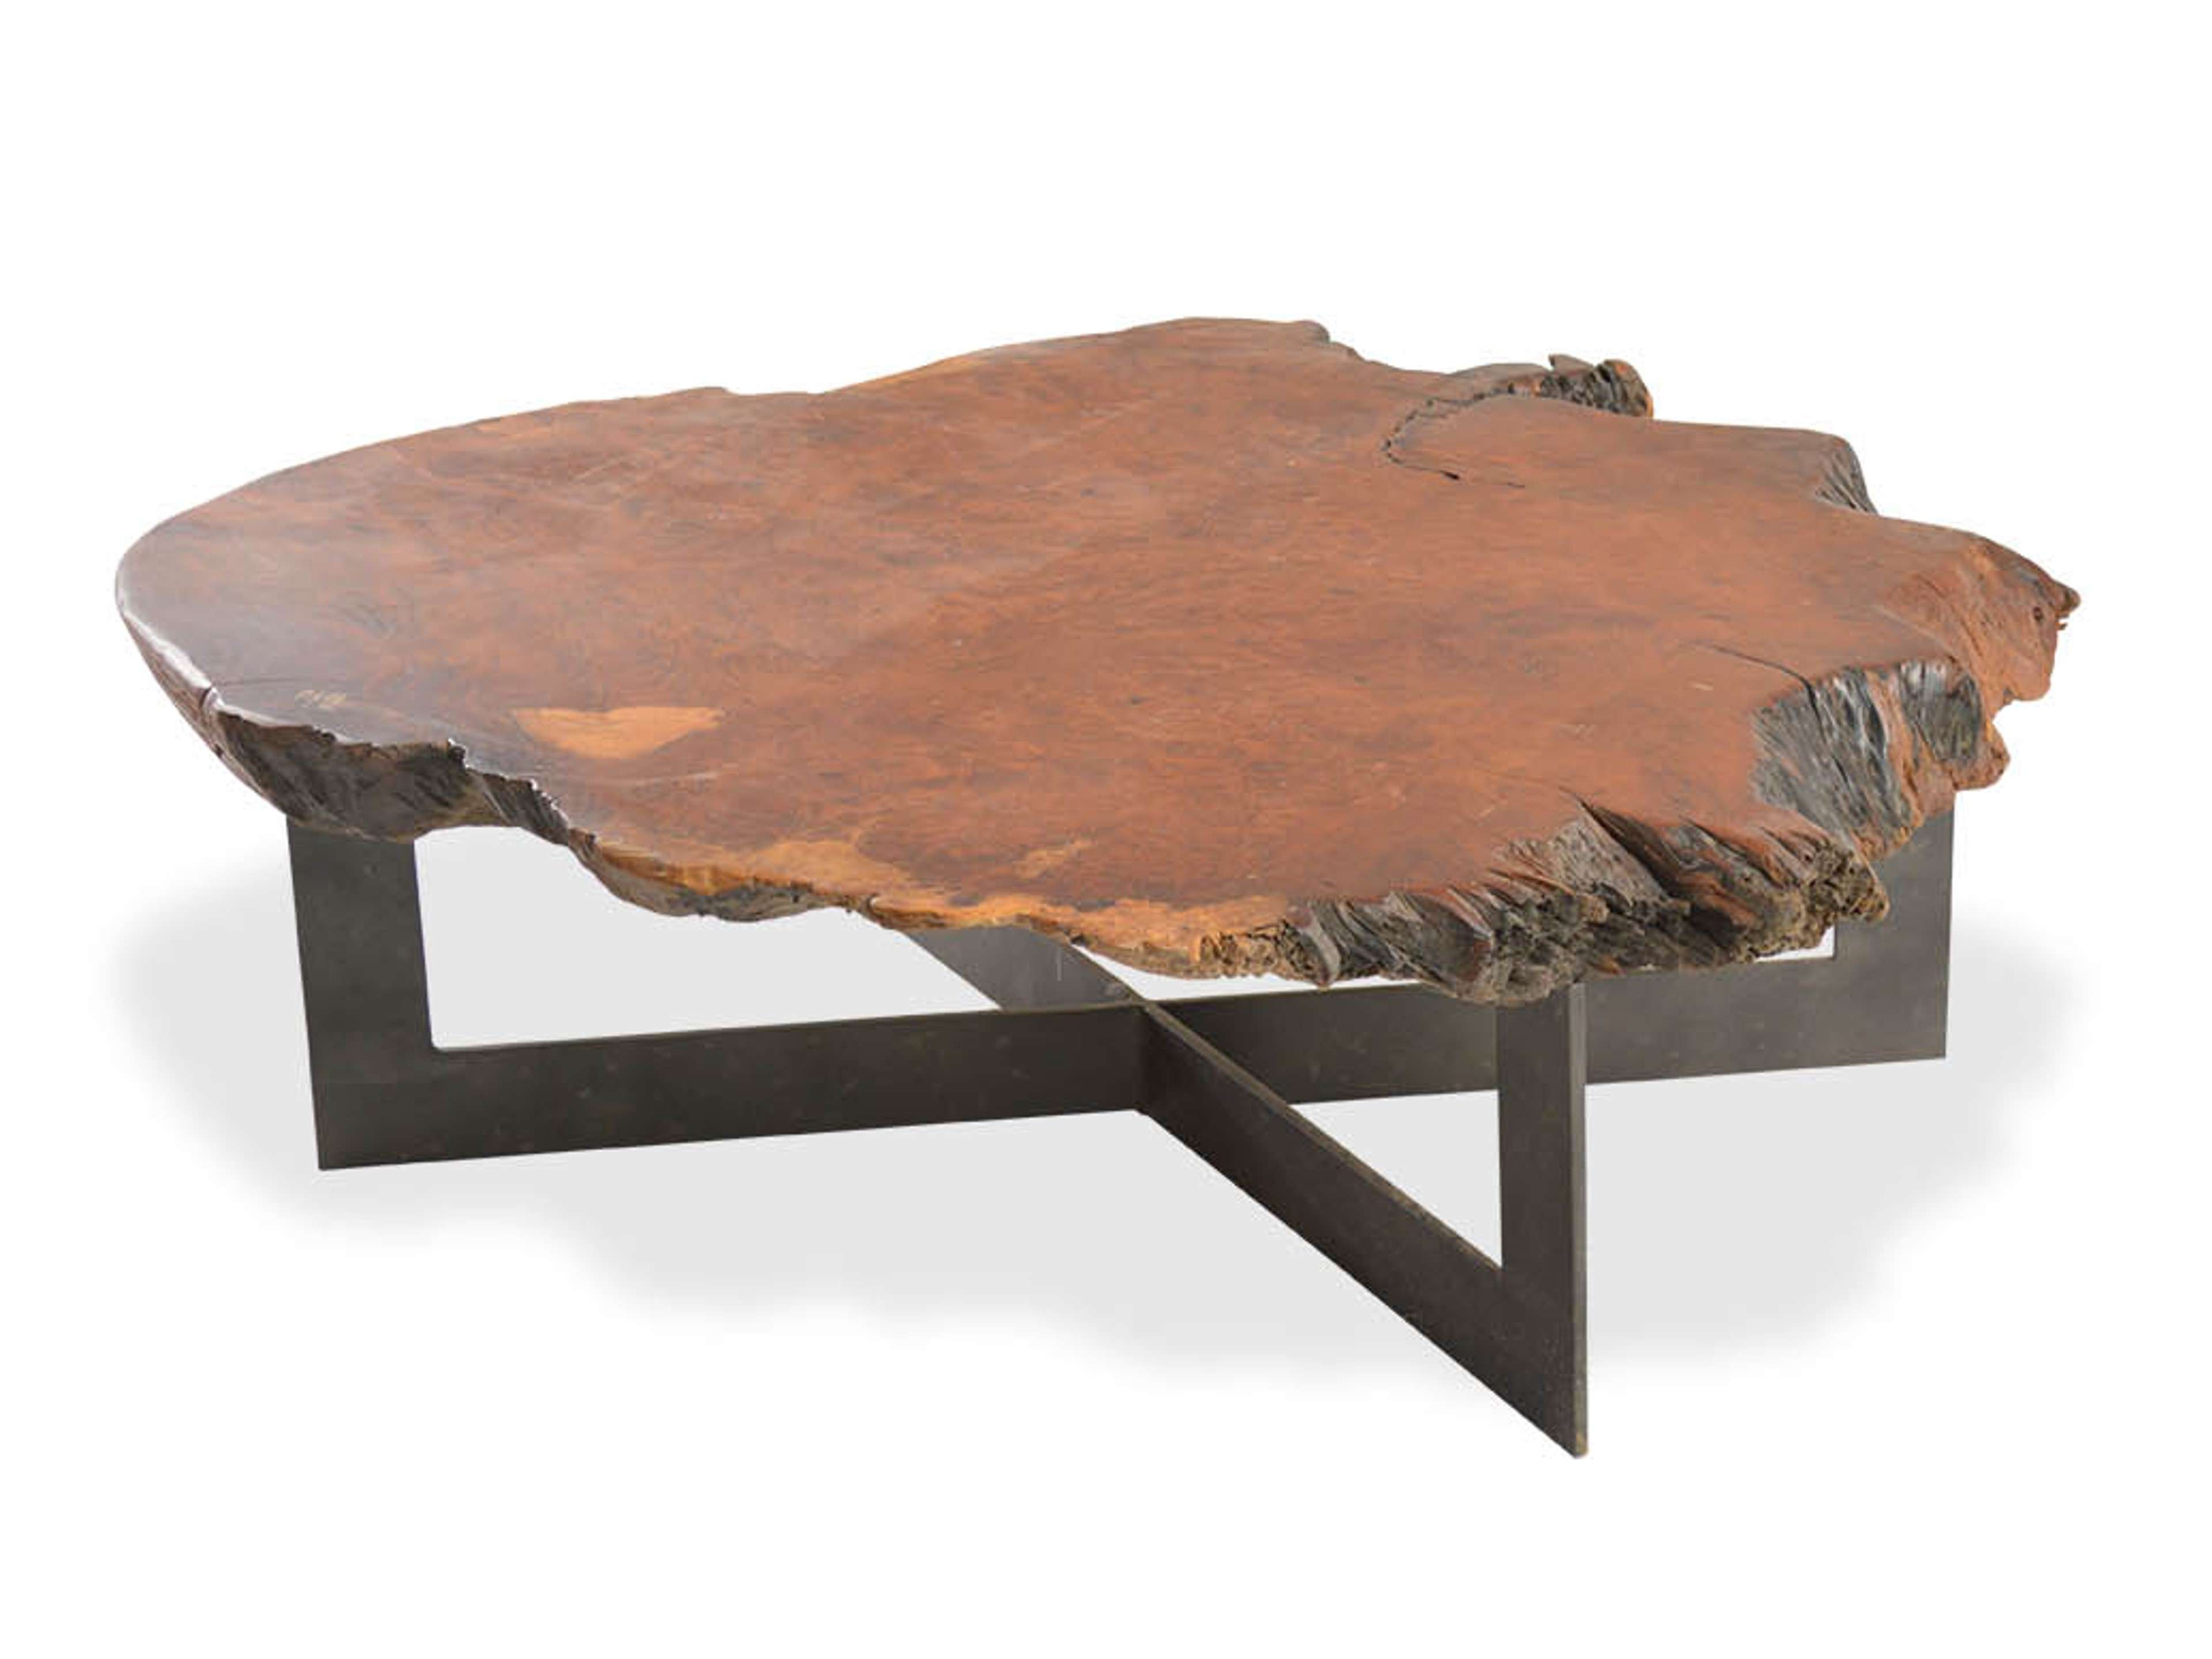 Natural Wood Coffee Tables Pertaining To Latest Natural Wood Coffee Tables (View 14 of 20)